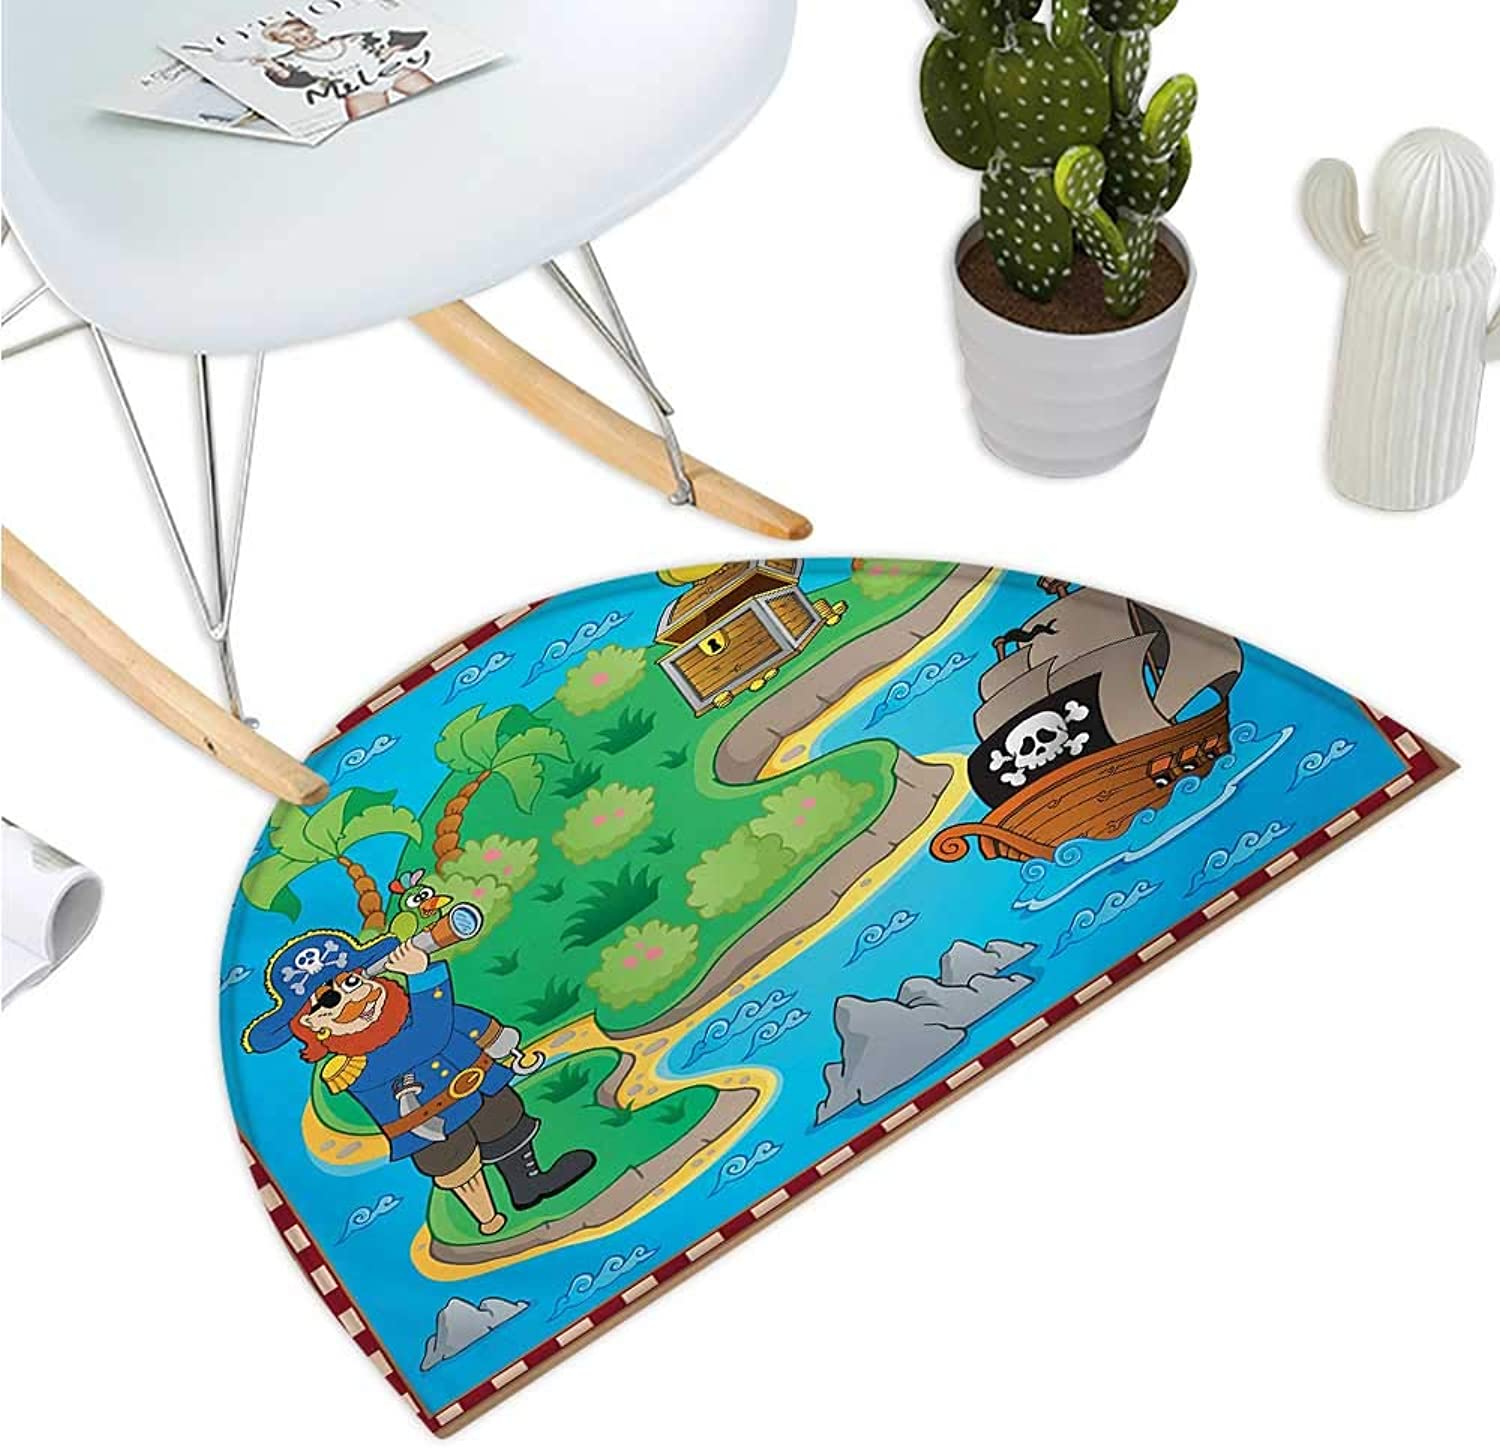 Island Map Semicircular Cushion Funny Cartoon of Treasure Island with A Pirate Ship and Parred Kids Play Room Entry Door Mat H 39.3  xD 59  Multicolor